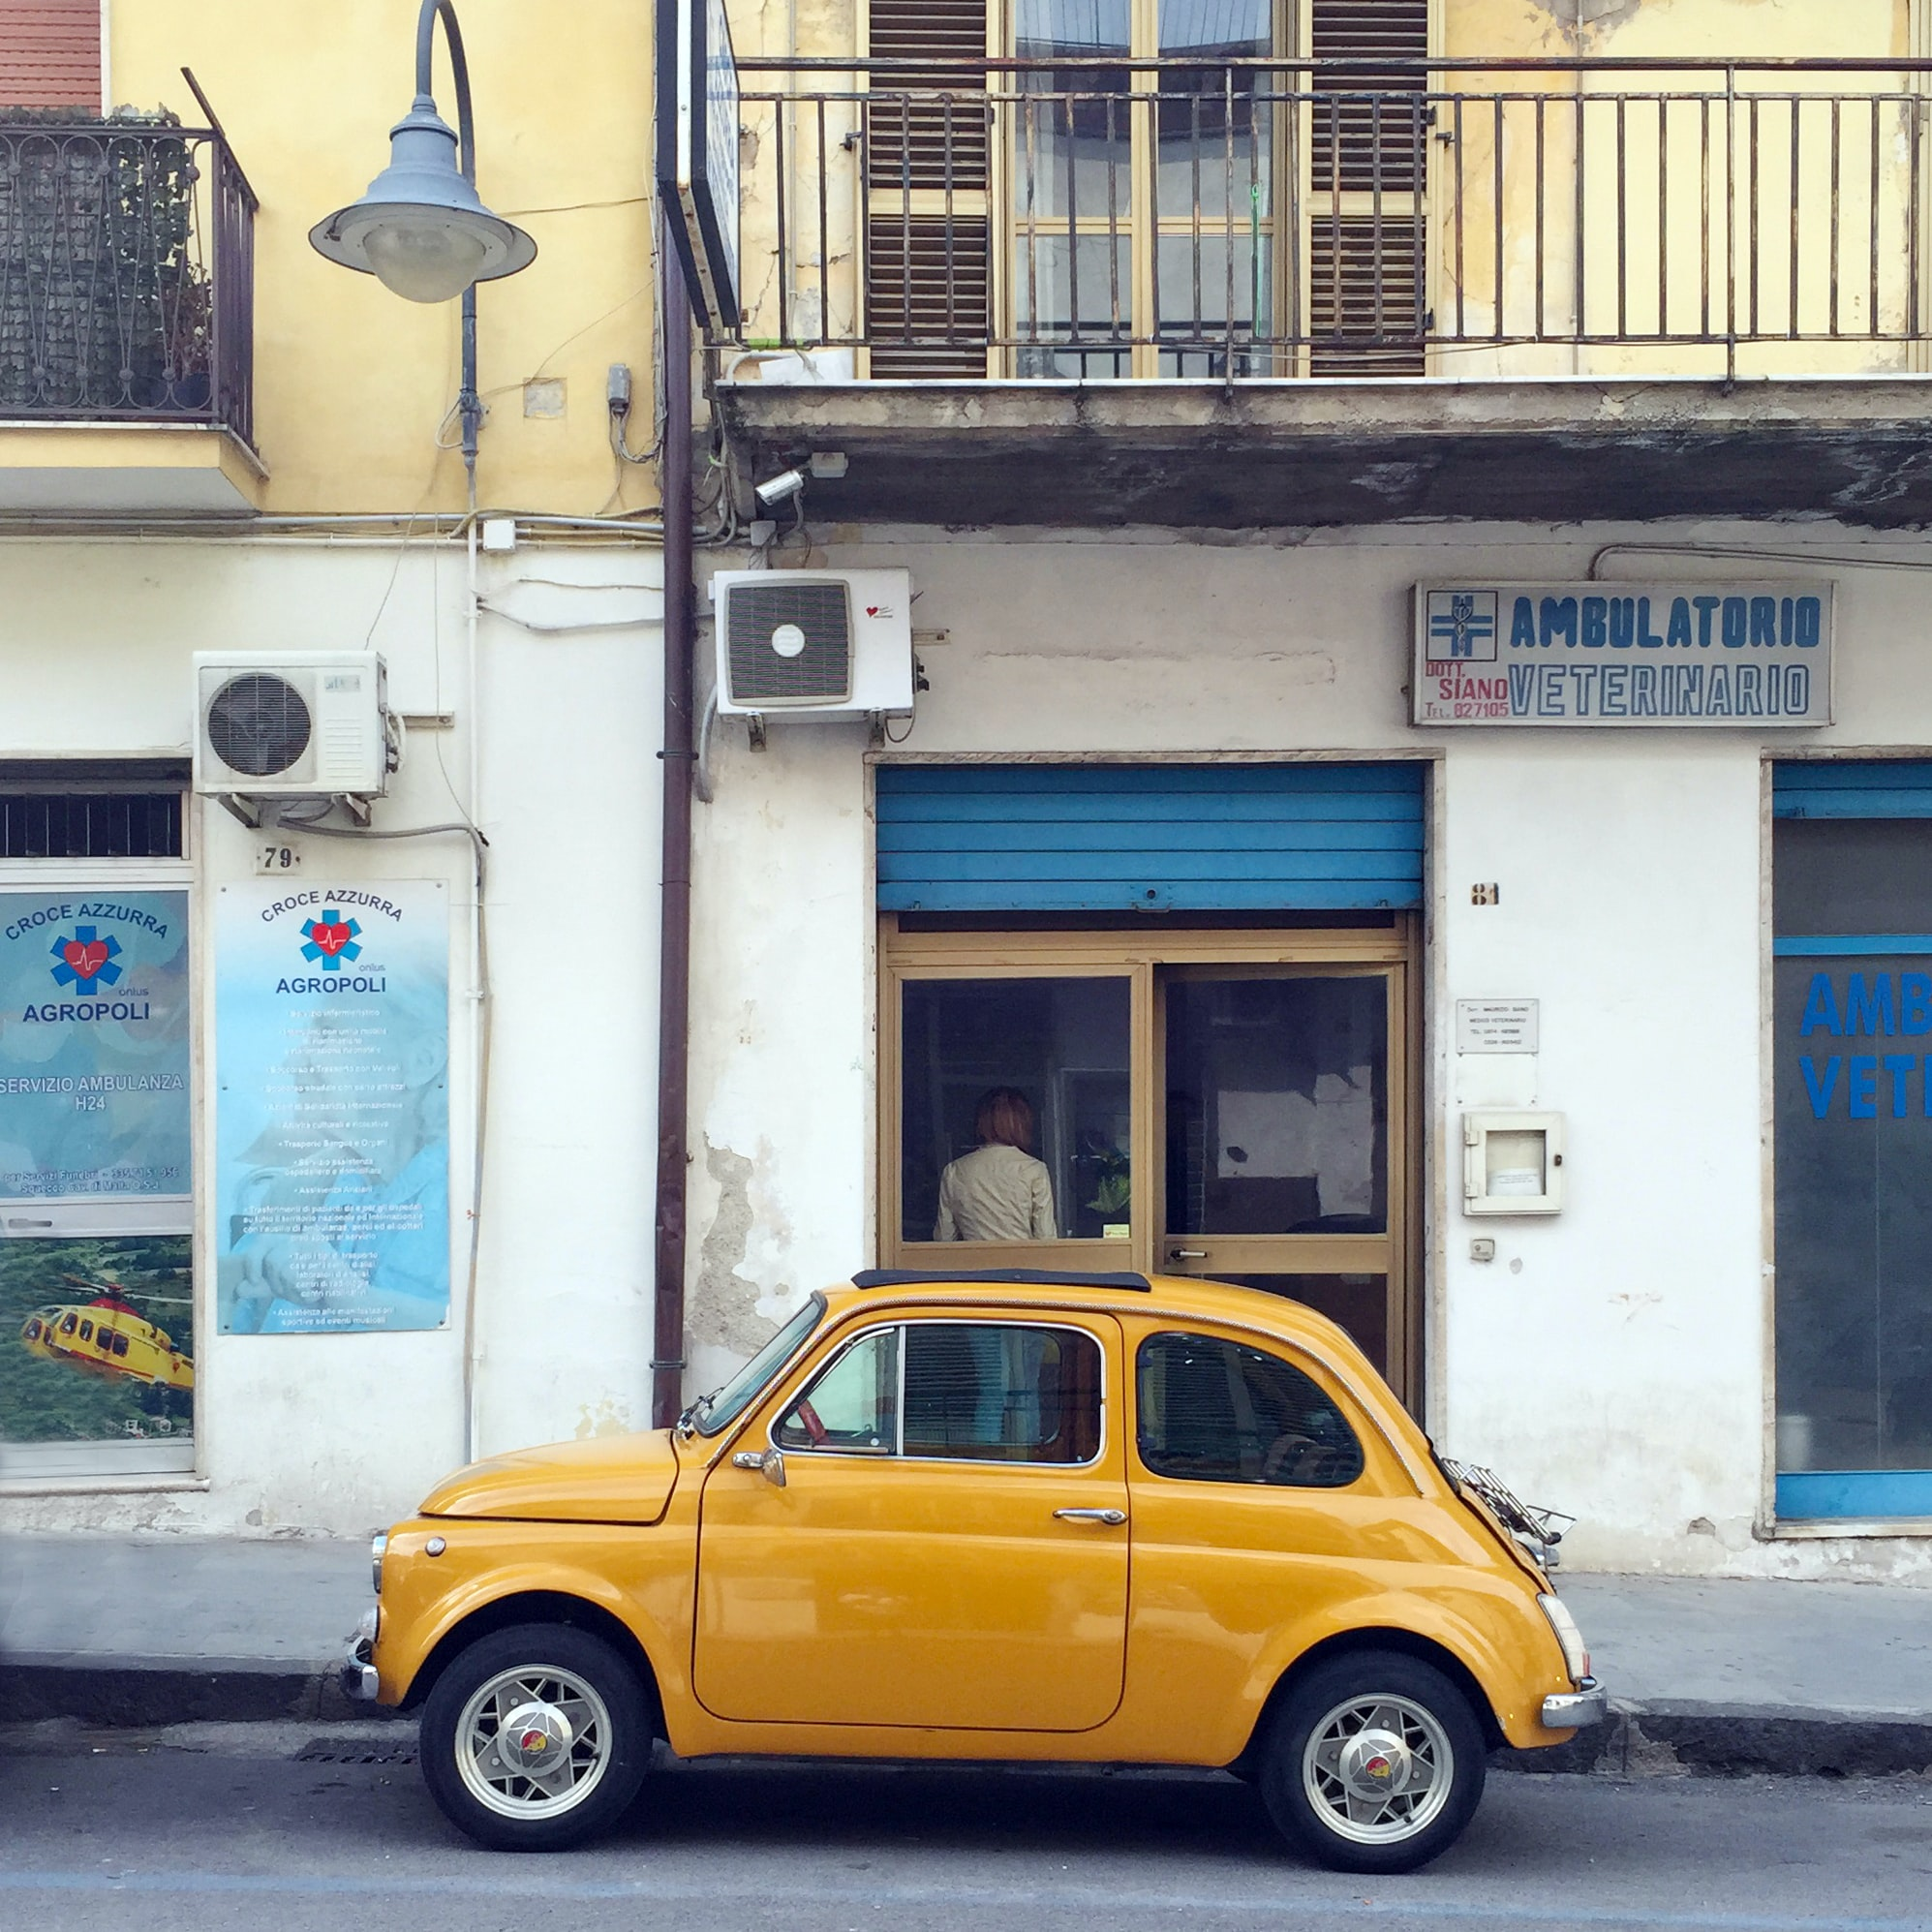 A yellow vintage VW Beetle parked in front of a building.